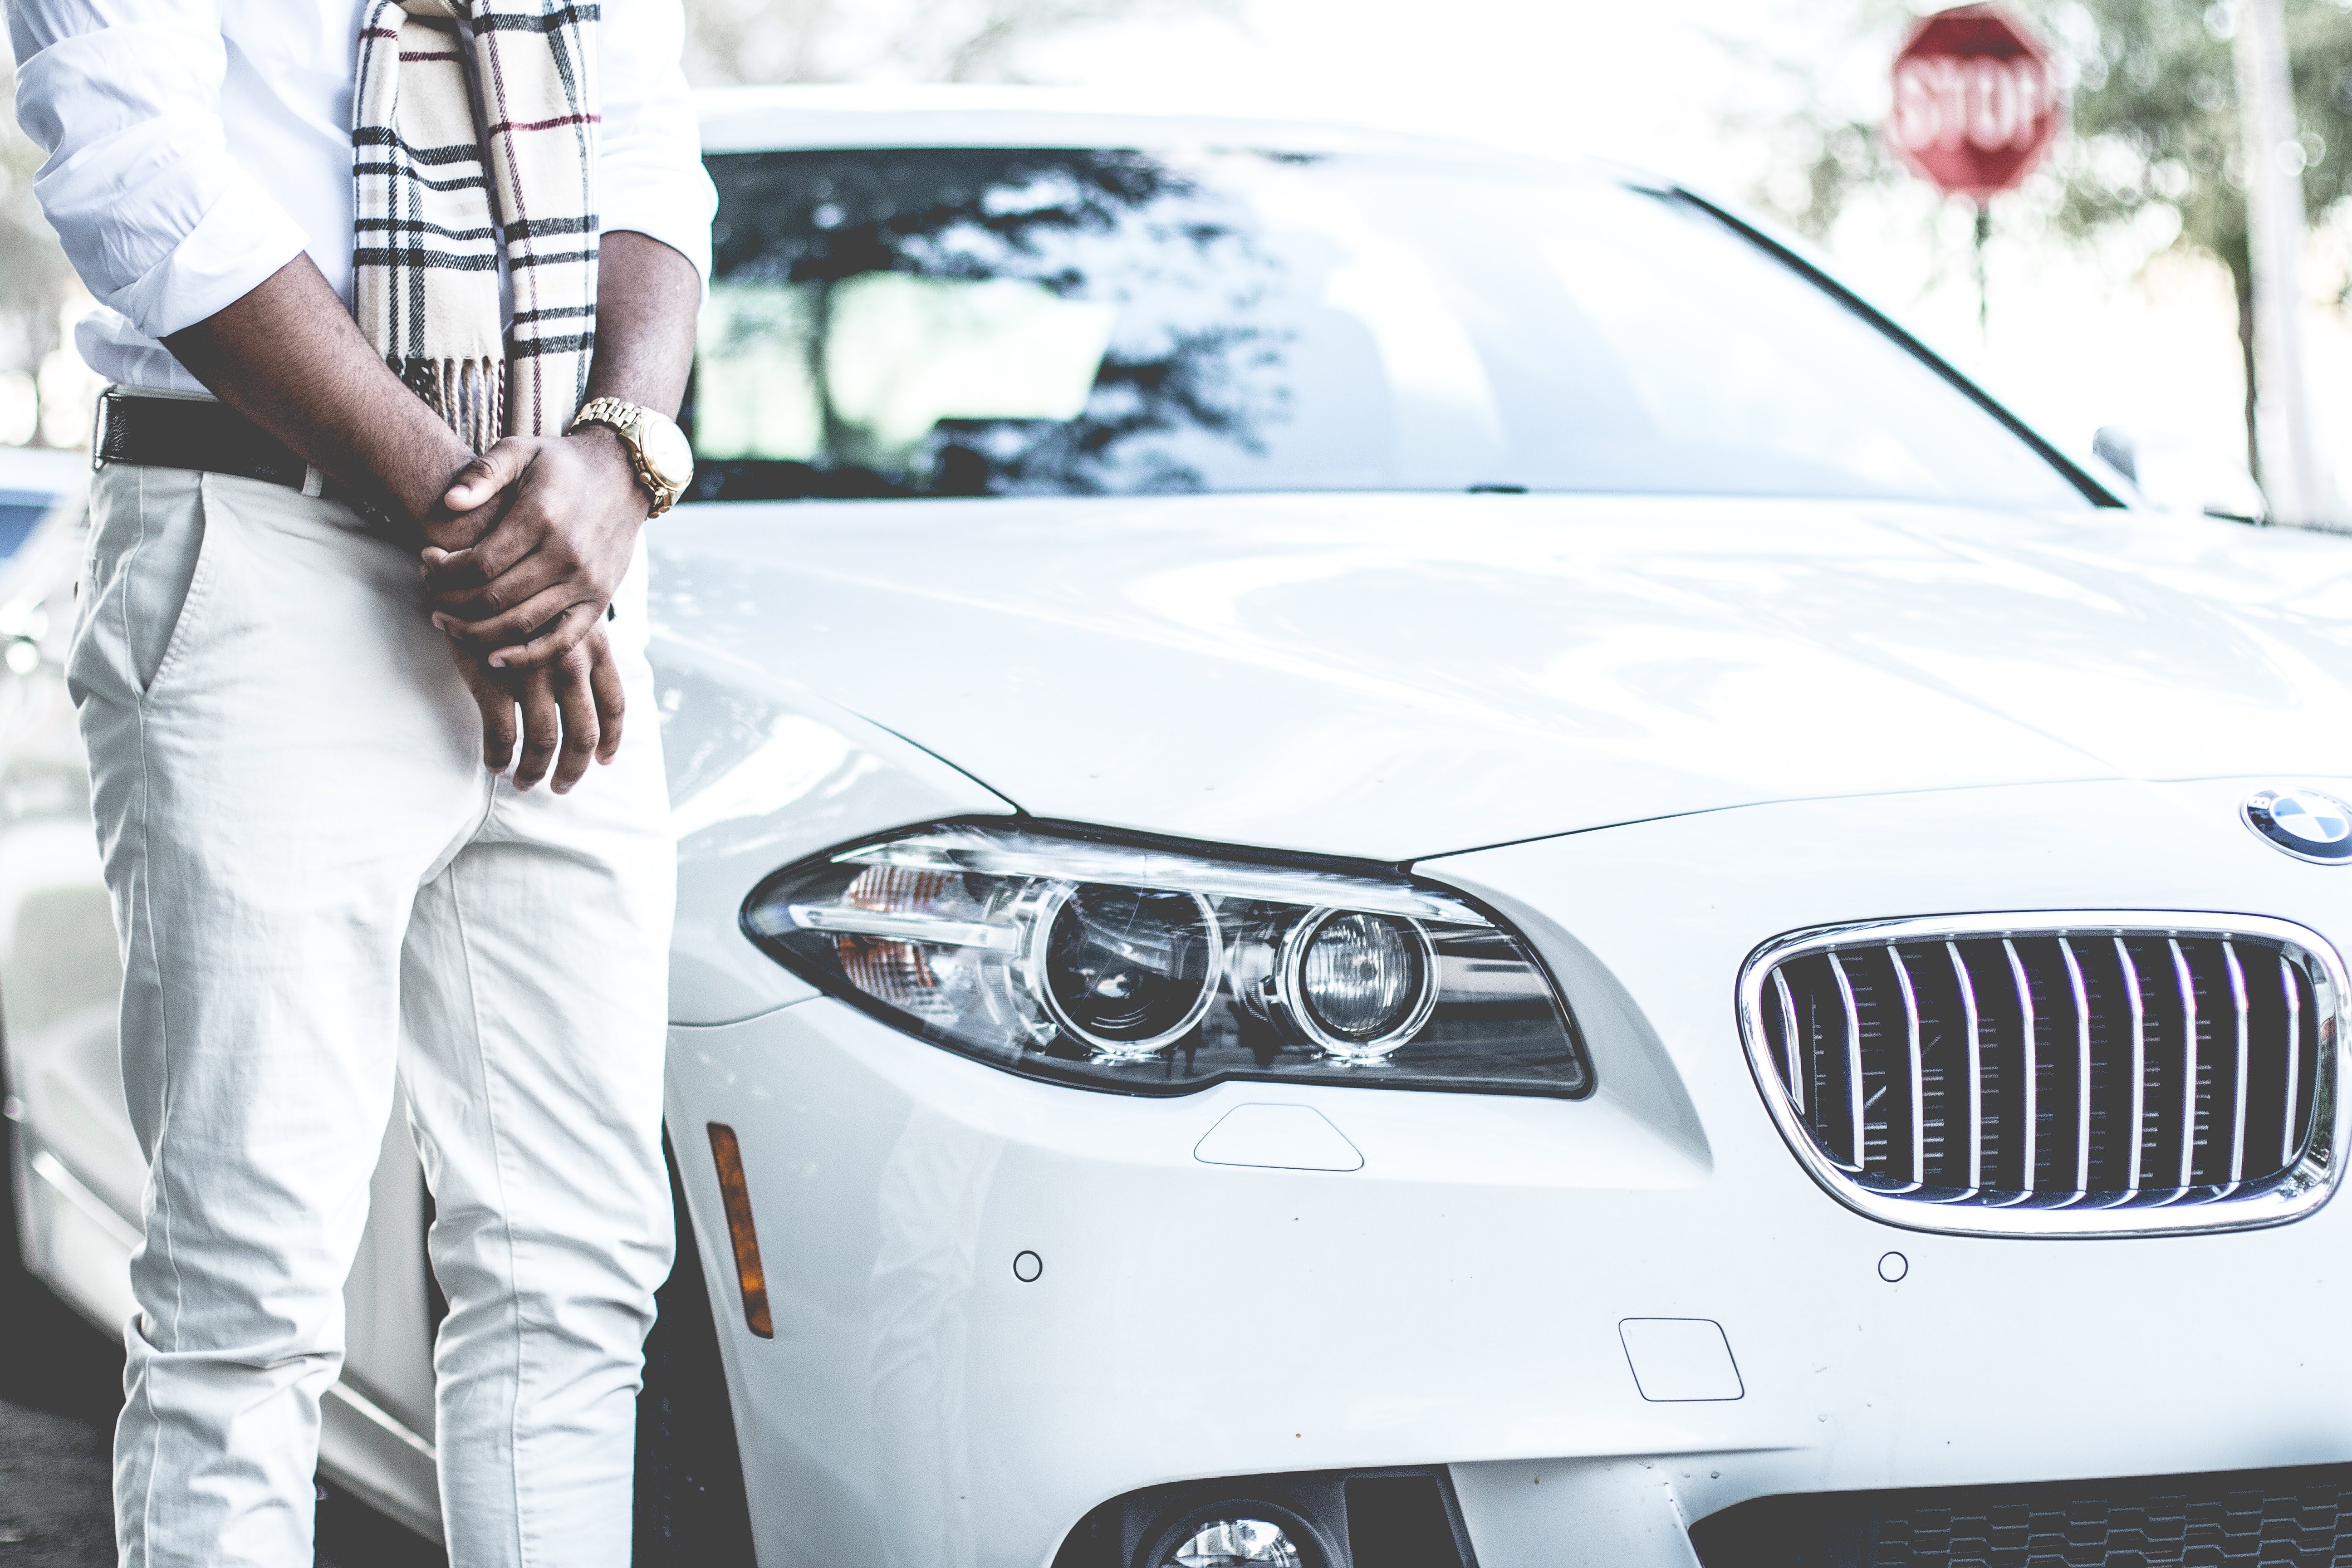 person standing beside the white BMW car